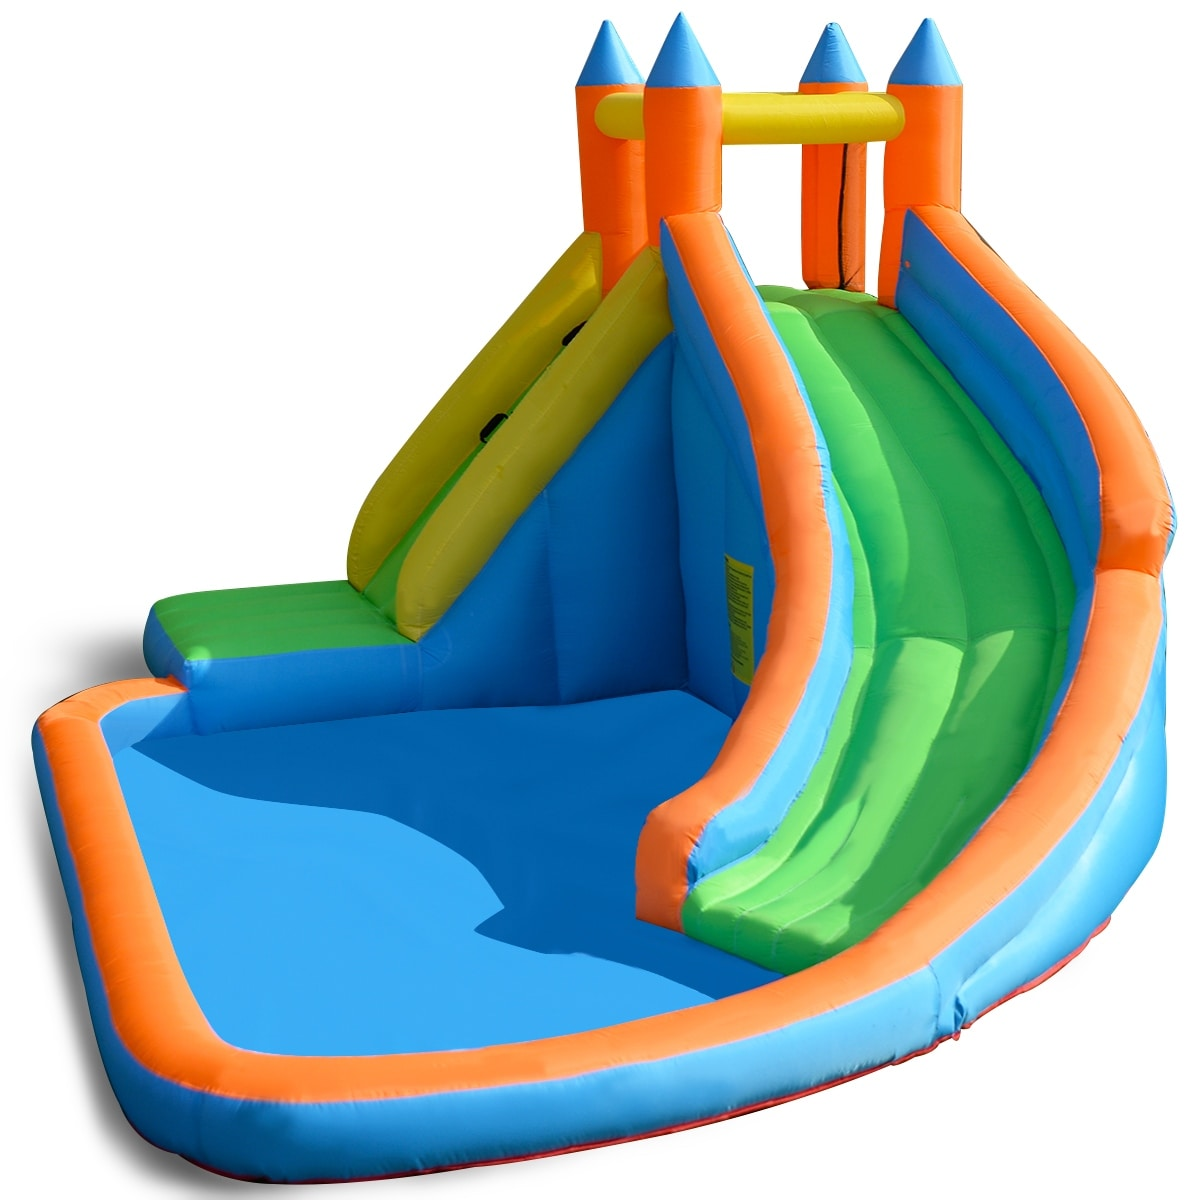 Kids Inflatable Water Slide Bounce House Castle Outdoor ...